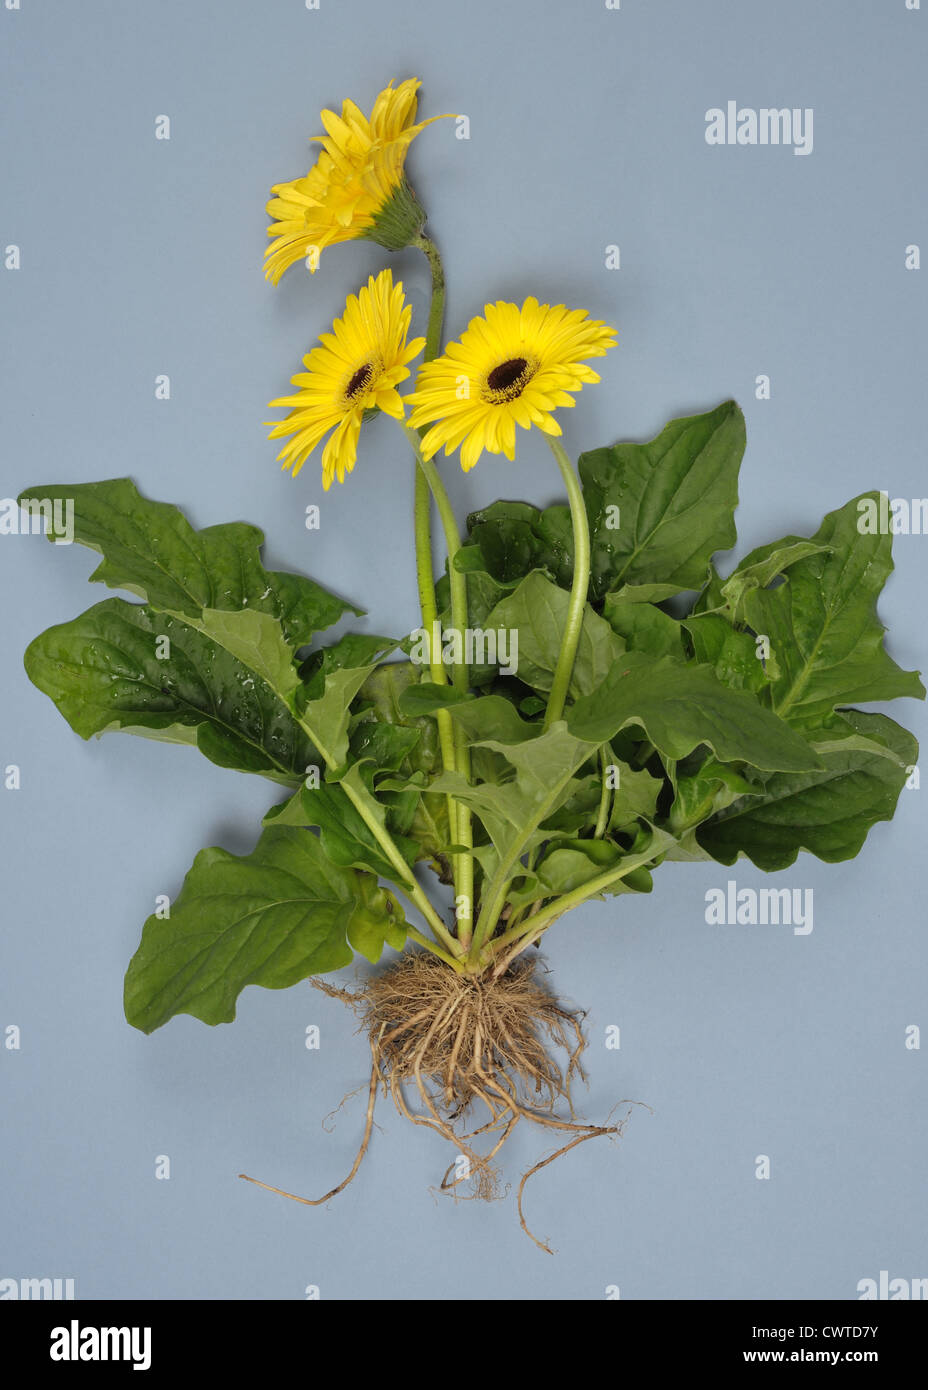 Gerbera leaves stock photos gerbera leaves stock images alamy gerbera plant with yellow flowers leaves and roots exposed to show plant structure stock izmirmasajfo